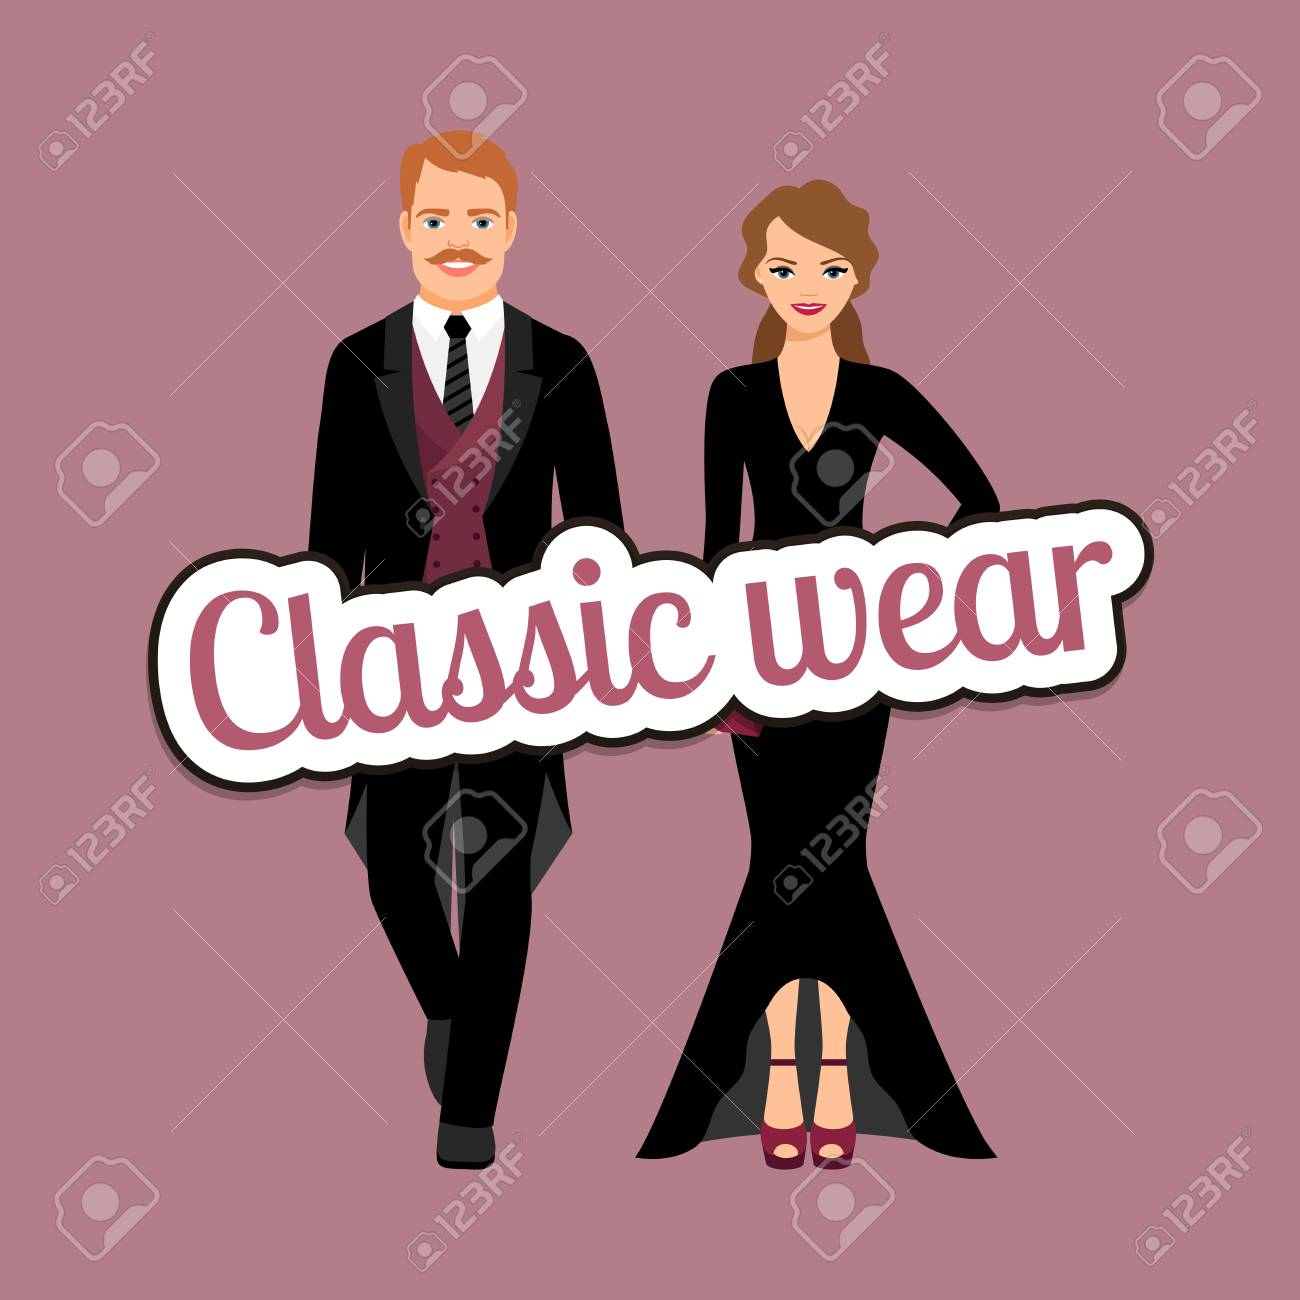 a66c4f39 Evening fashion outfit people in classic wear style vector concept Stock  Vector - 82893721